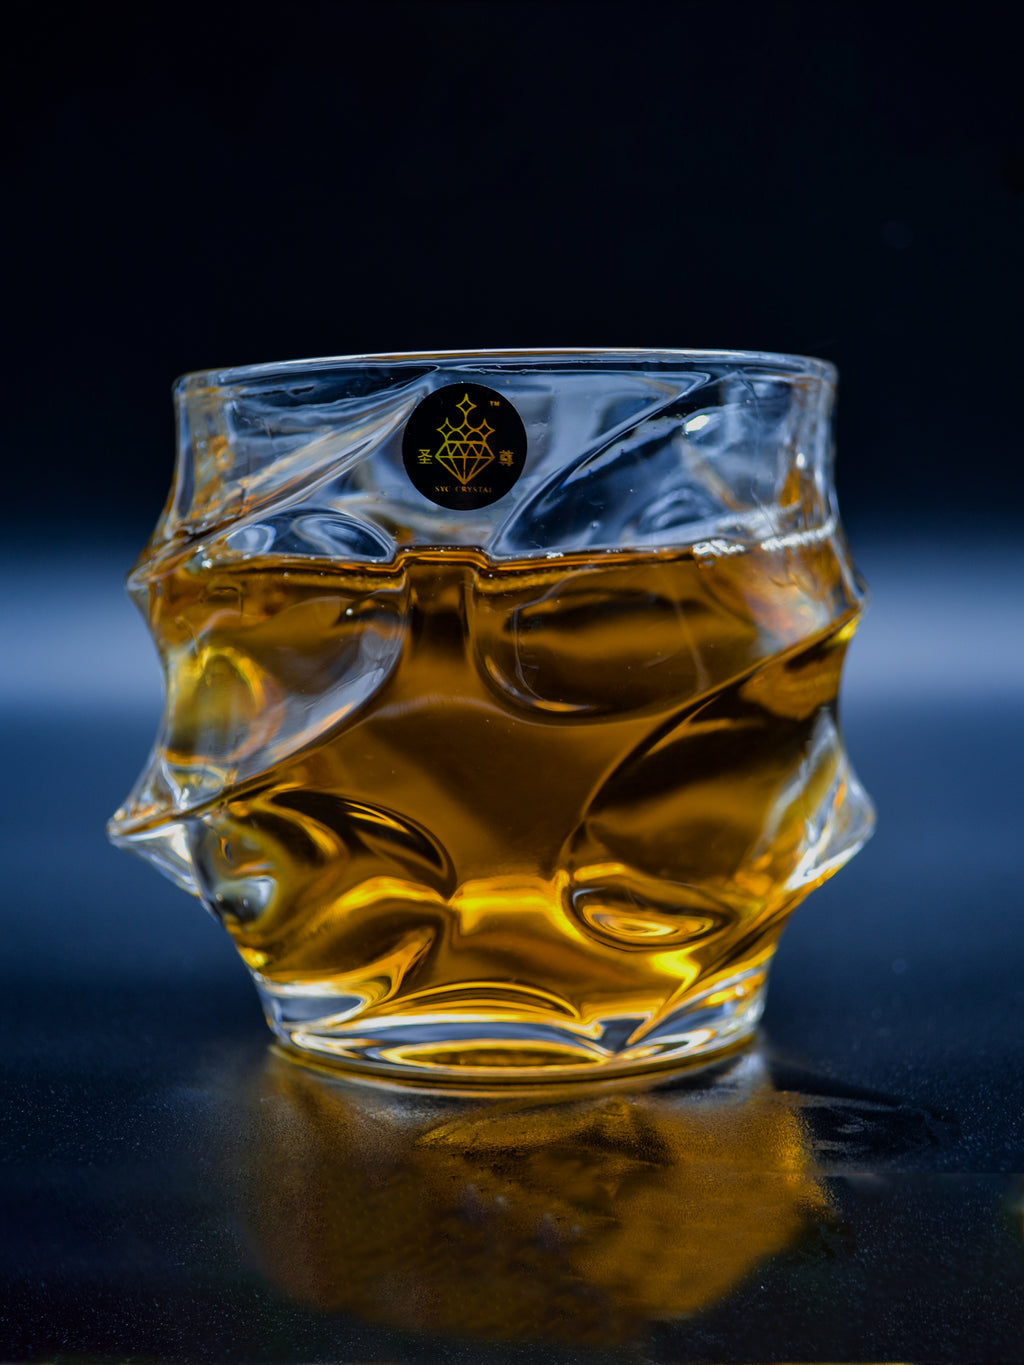 Macbeth; Whiskey Series